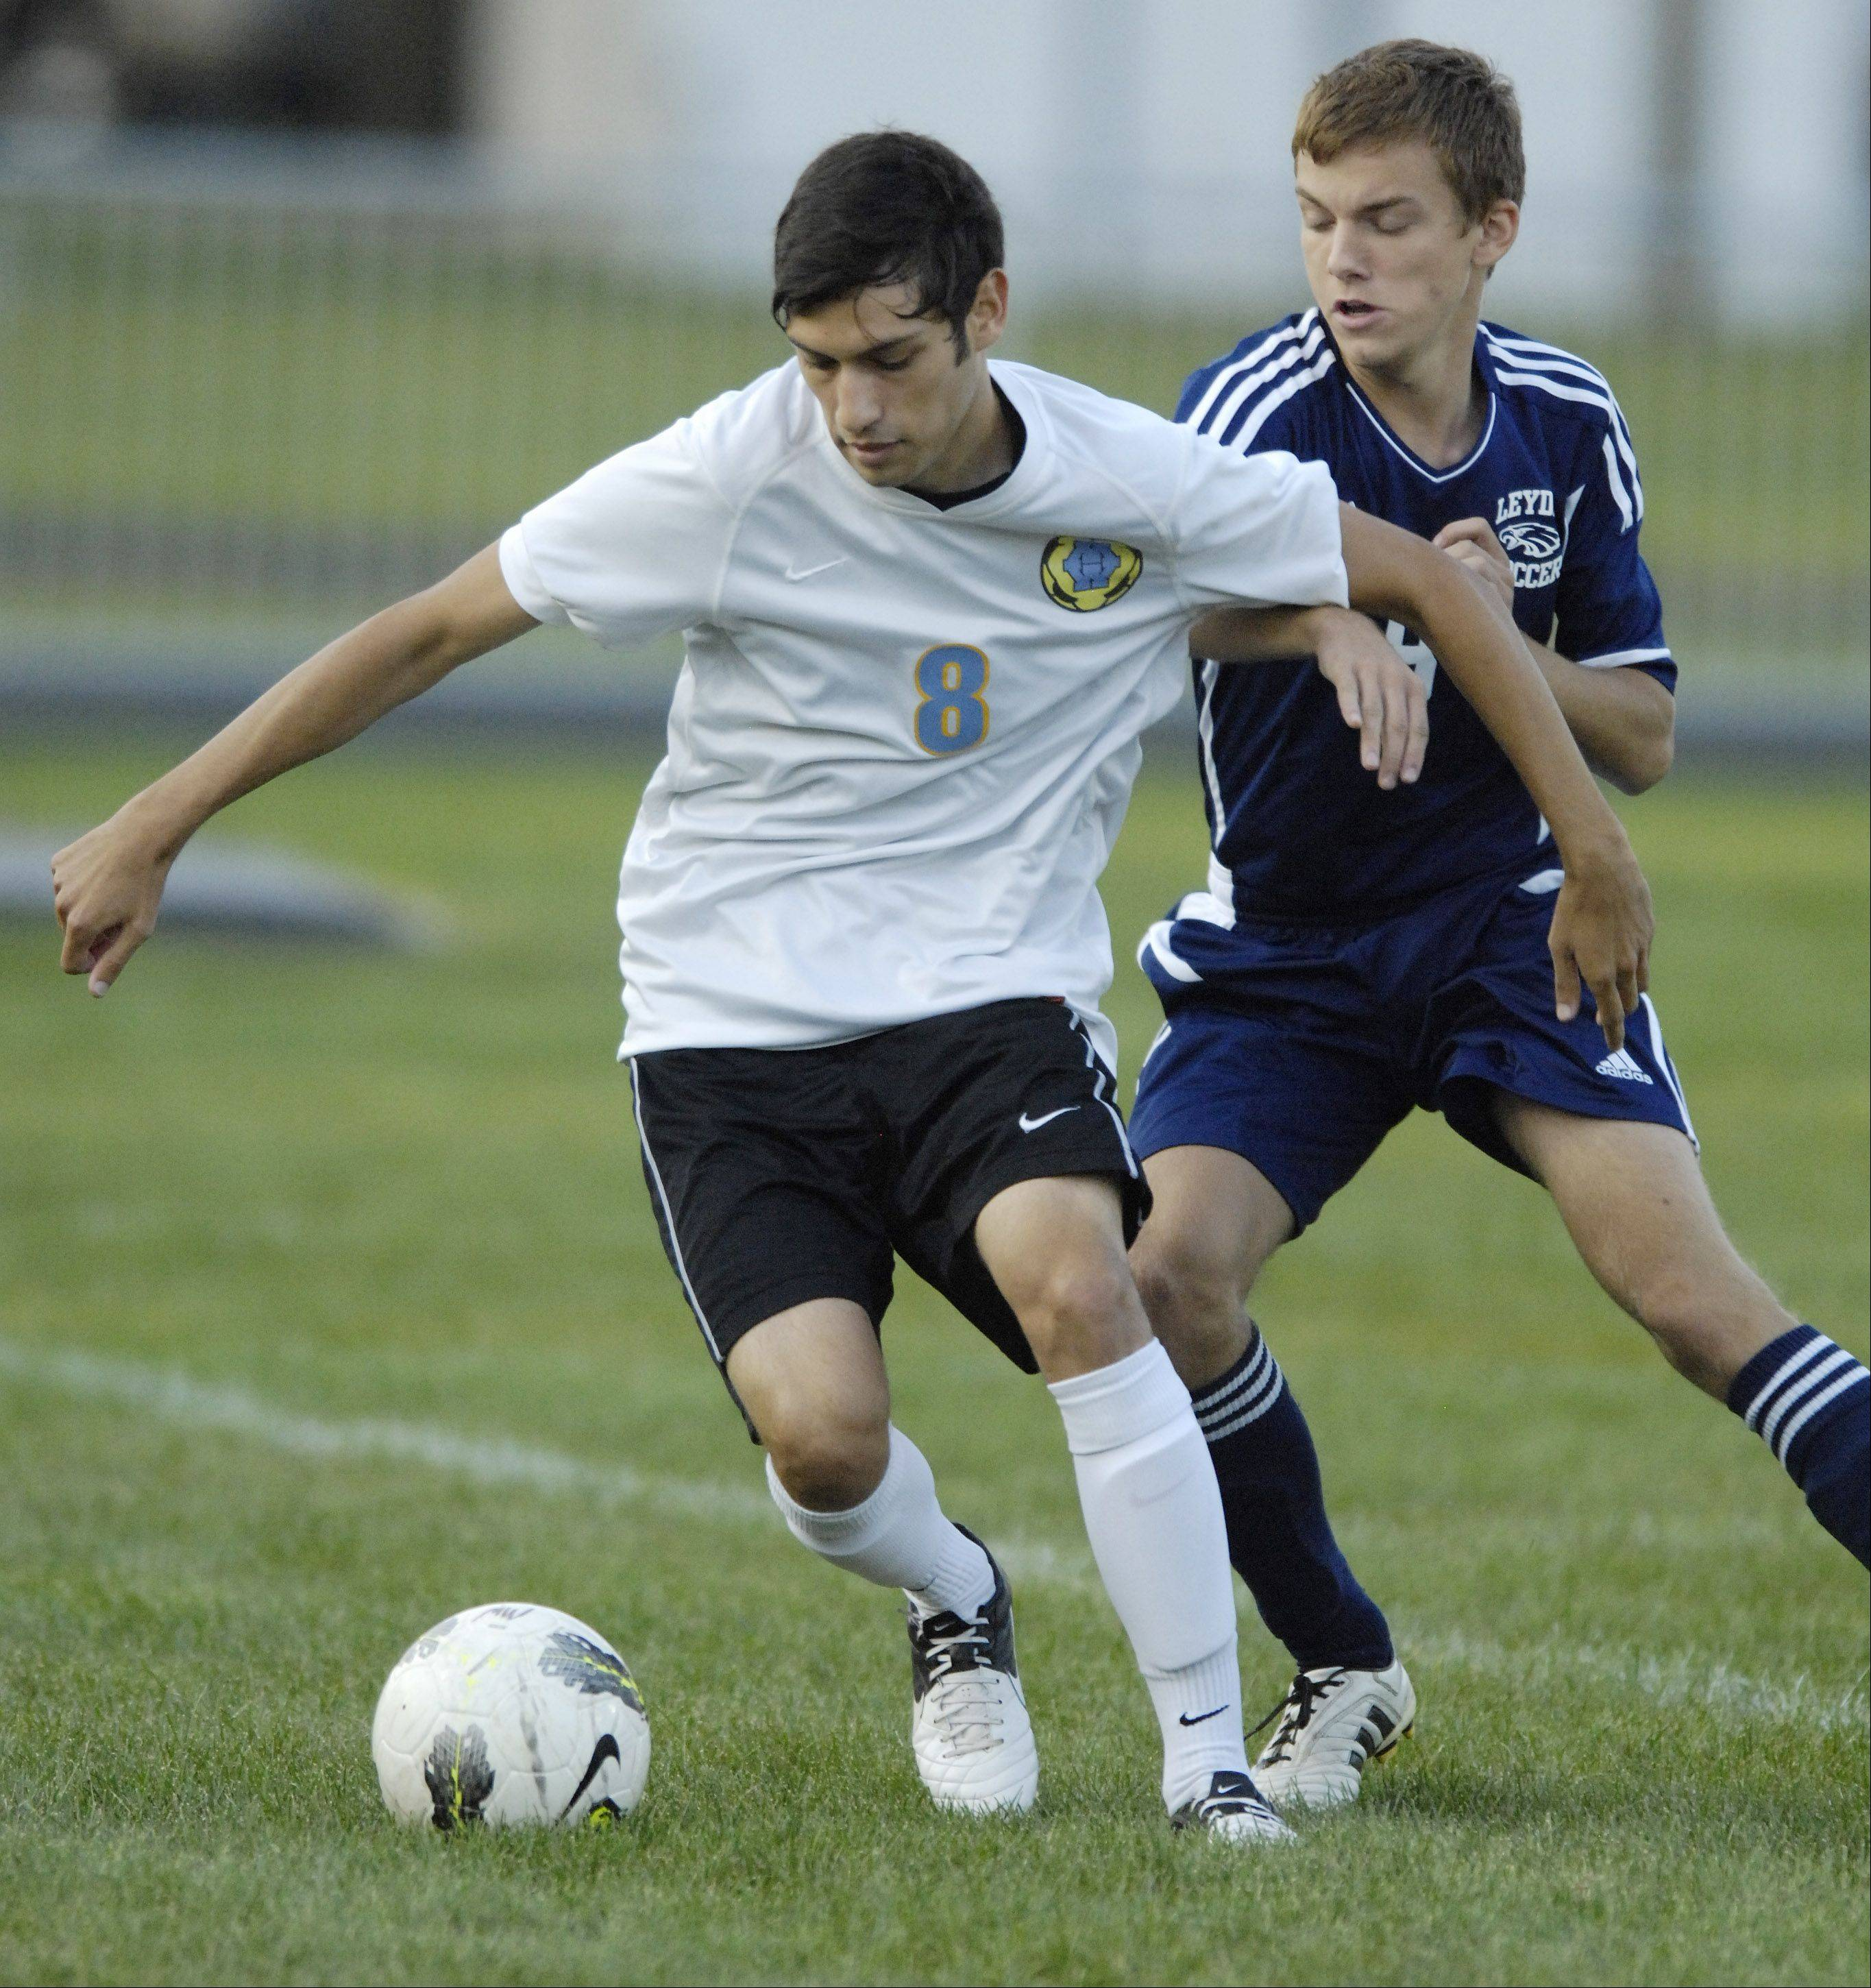 Maine West's Joshua Deleon, left, steps in front of Leyden's Kevin Ziobro to control the ball during Wednesday's game.